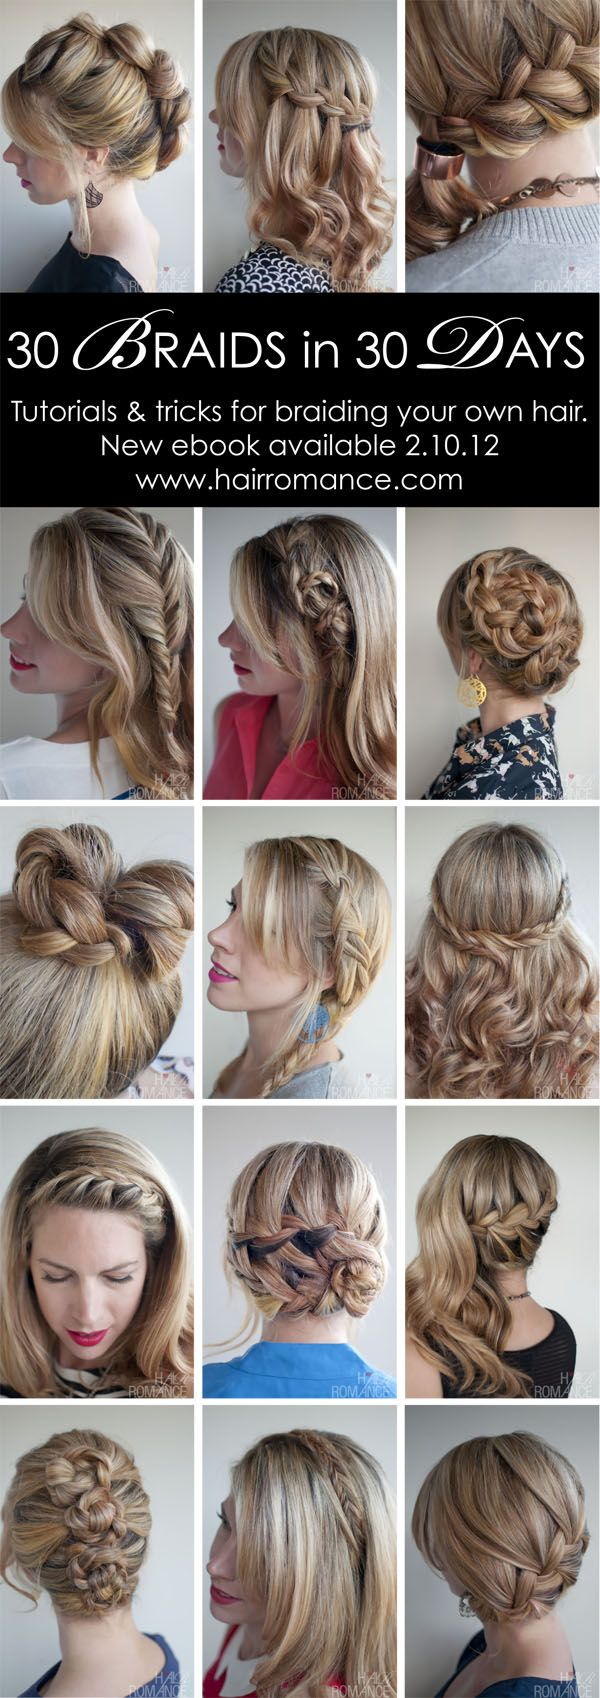 The #30Braids30Days hairstyle challenge is going to become an ebook! The ebook will launch on 2.10.12 - stay tuned and check Hair Romance for more details.: 30Day, Hair Ideas, Braids Hairstyles, 30 Braids In 30 Day, Long Hair, Hair Do, Braids Ideas, Hair Style, Hair Romances